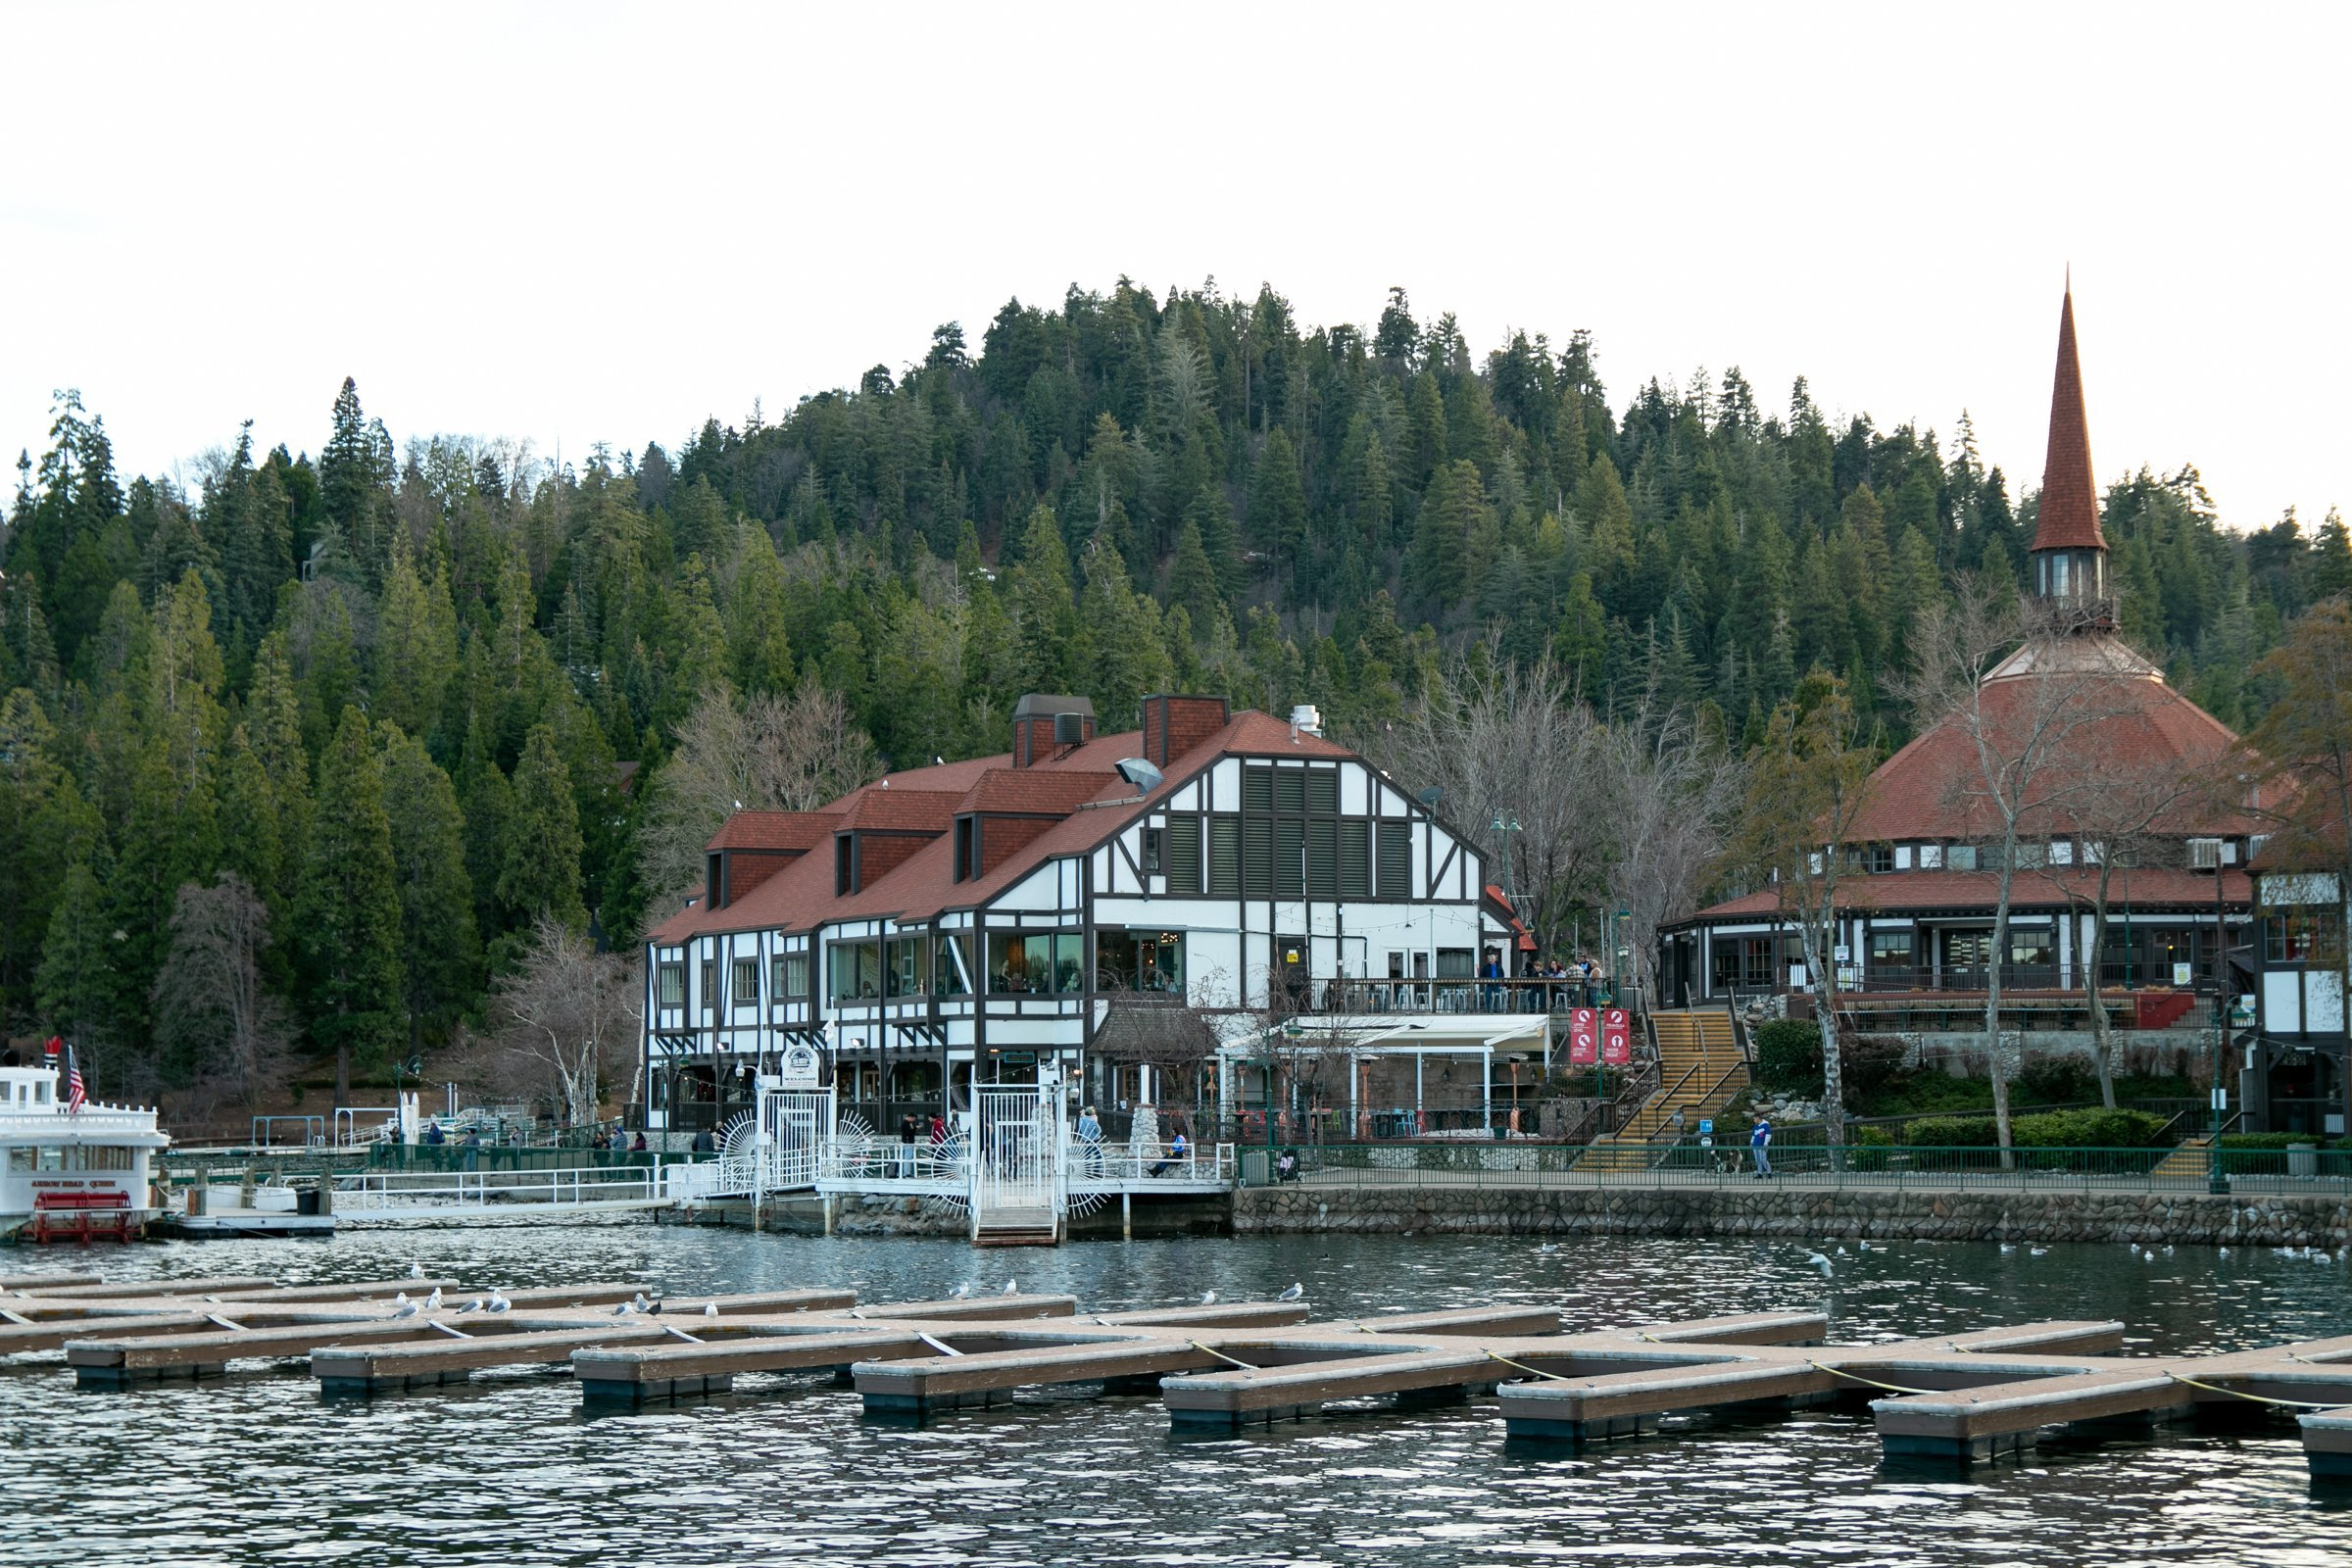 Forest And Buildings On Shore